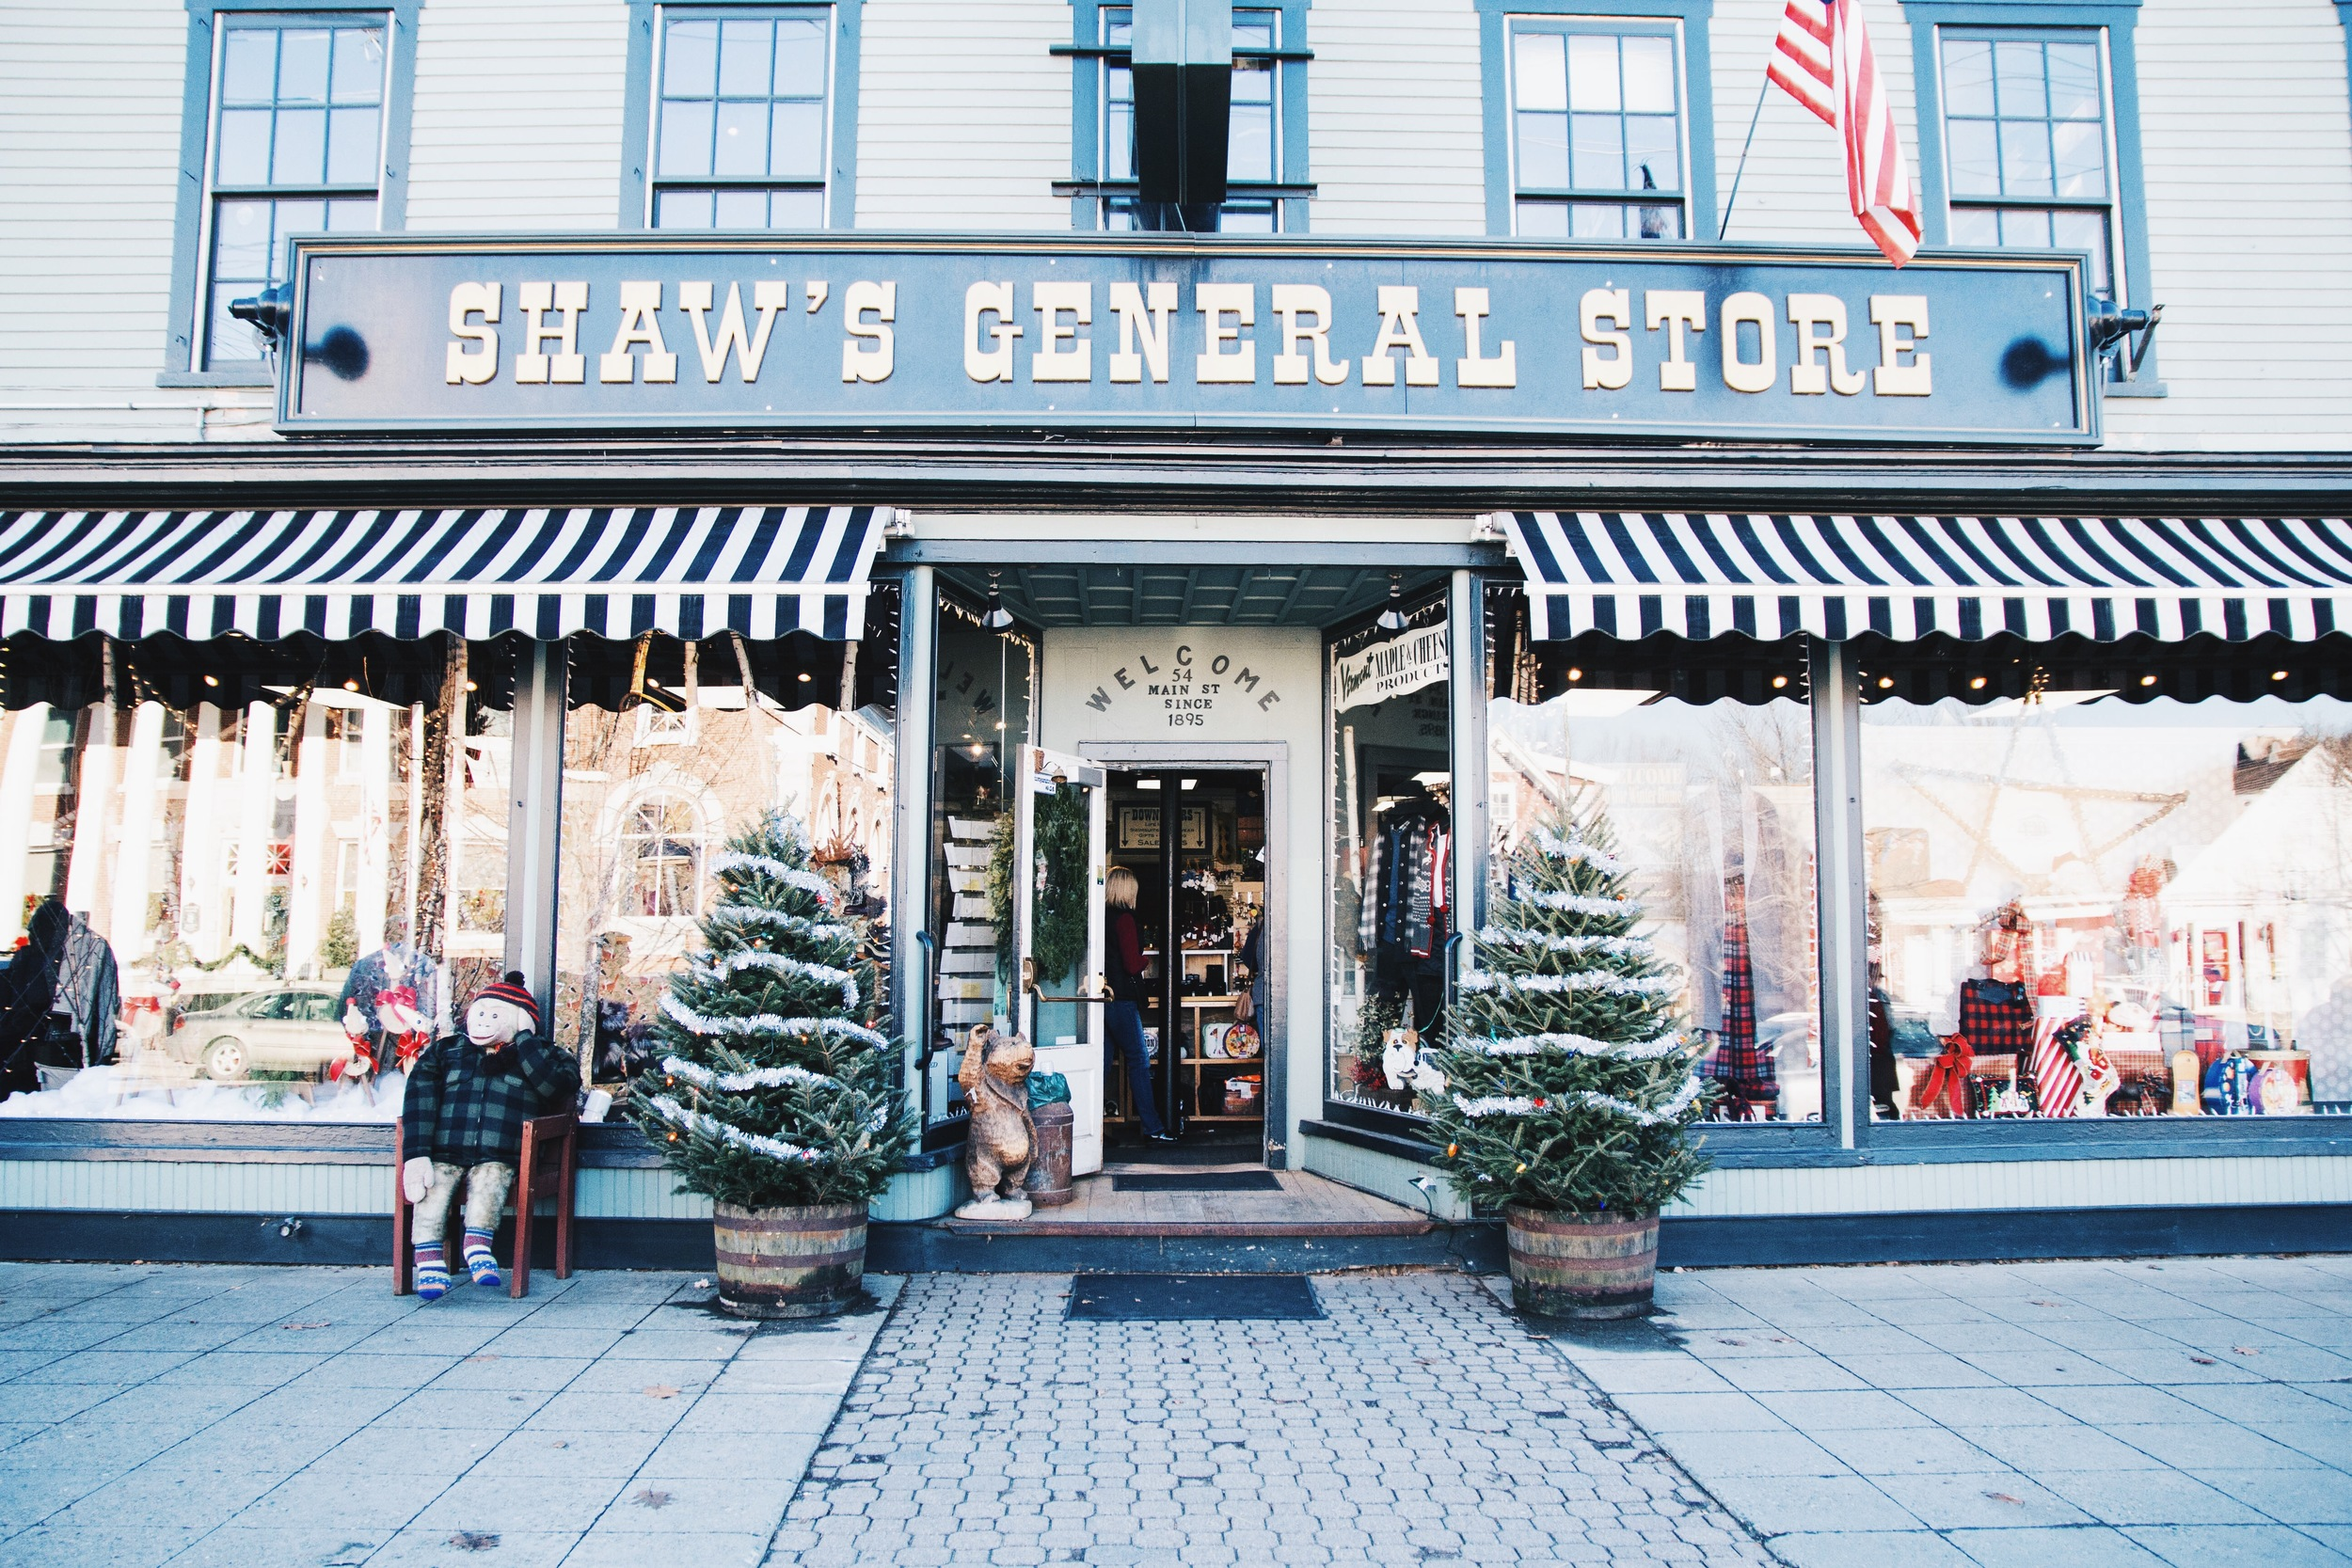 The Stowe general store.